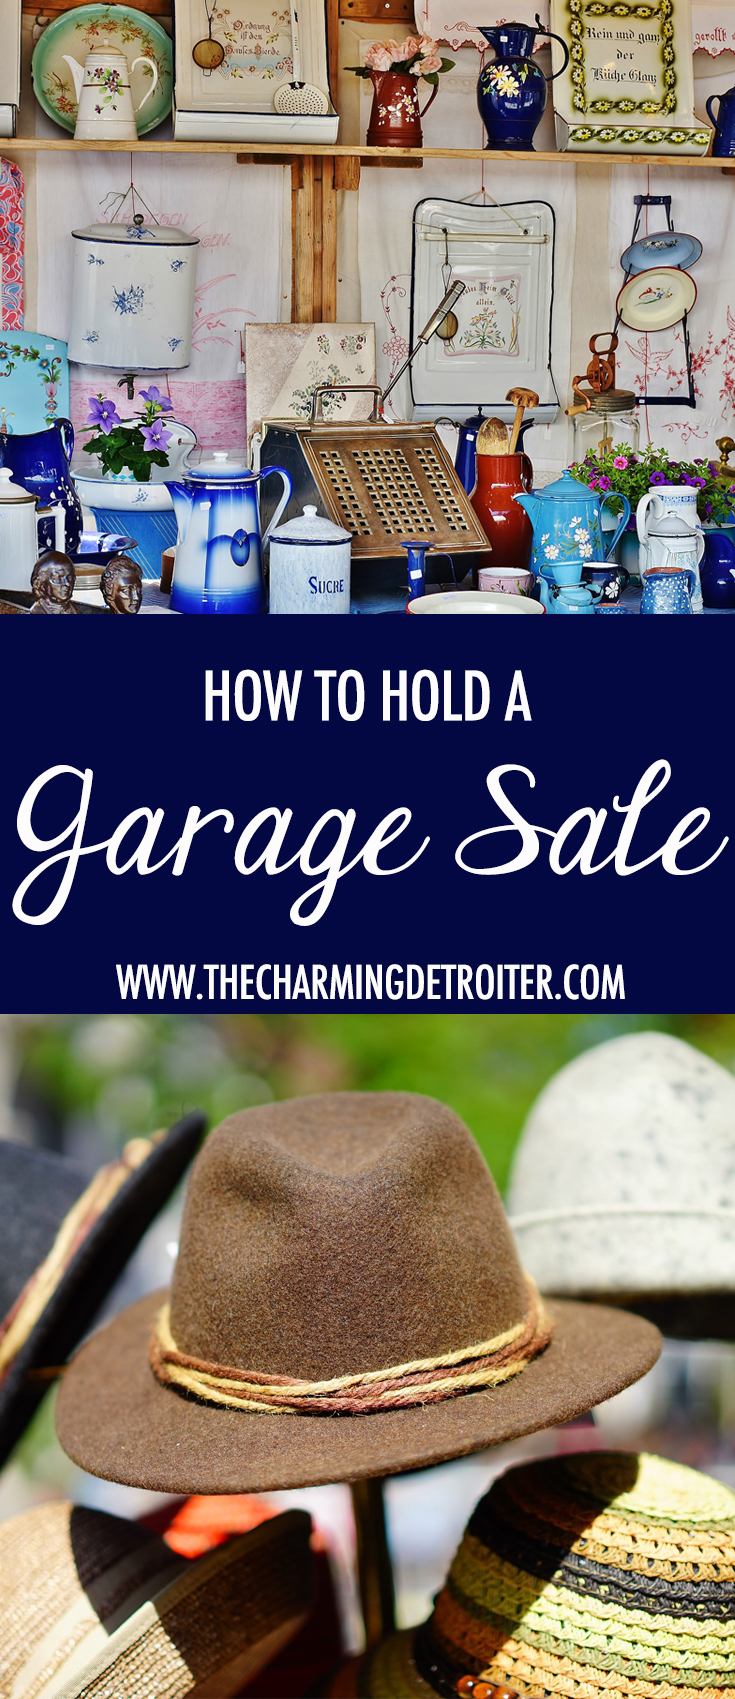 Ever wonder how to hold a garage sale? A few years ago we threw one epic sale: check out my tips for having your own yard sale and making some extra bucks!